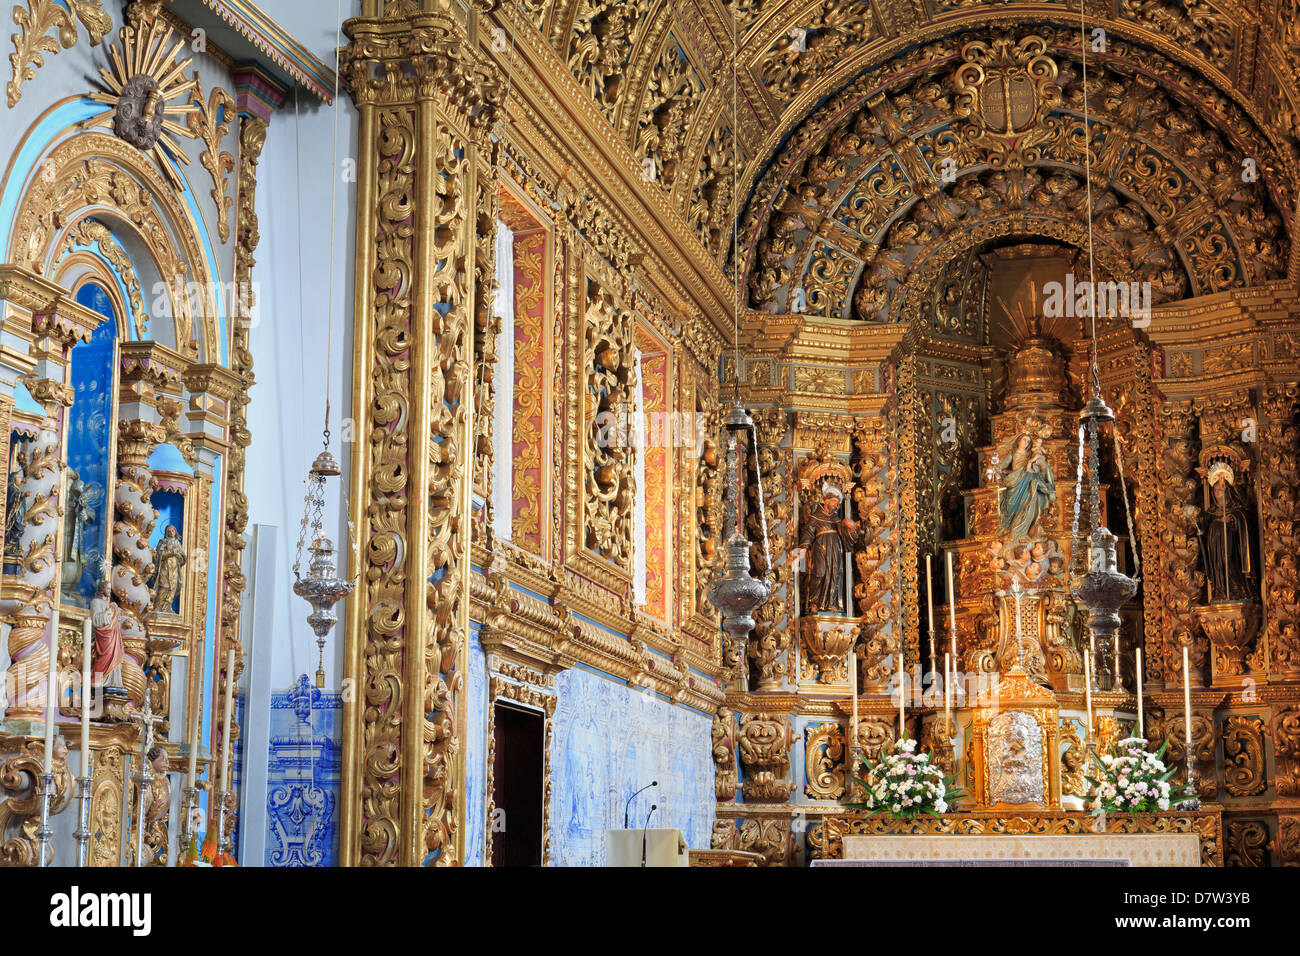 Santo Cristo Church in the Convento da Esperanca, Ponta Delgada City, Sao Miguel Island, Azores, Portugal - Stock Image